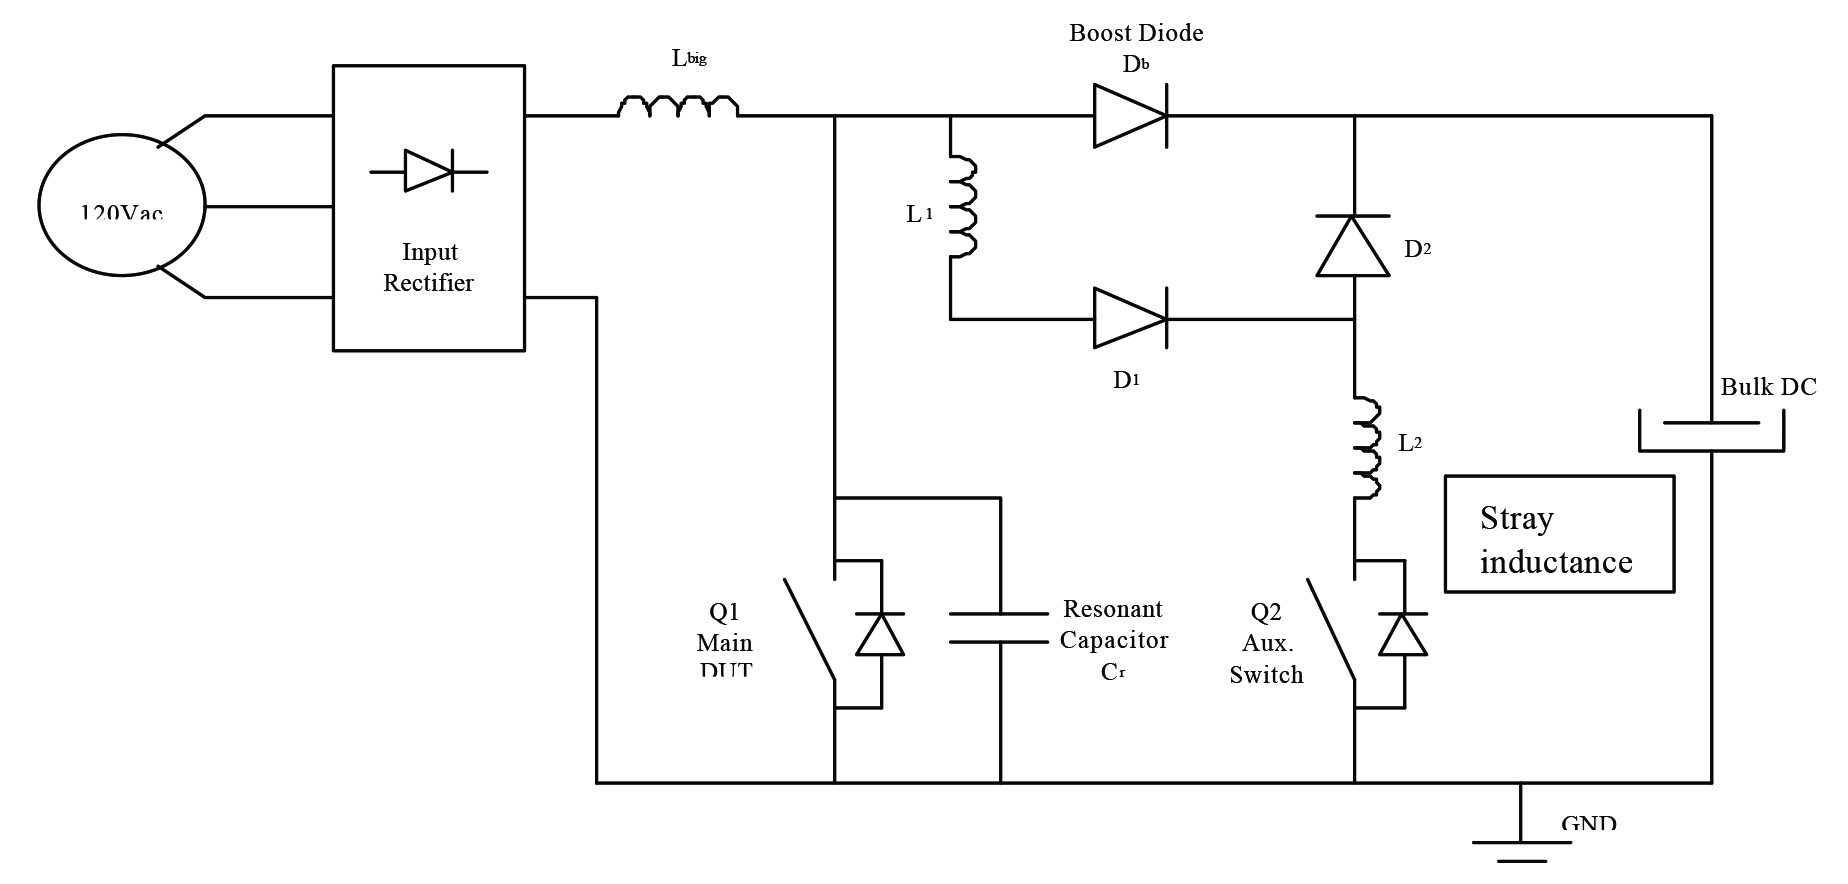 IGBT or MOSFET: Choose wisely - EE Publishers